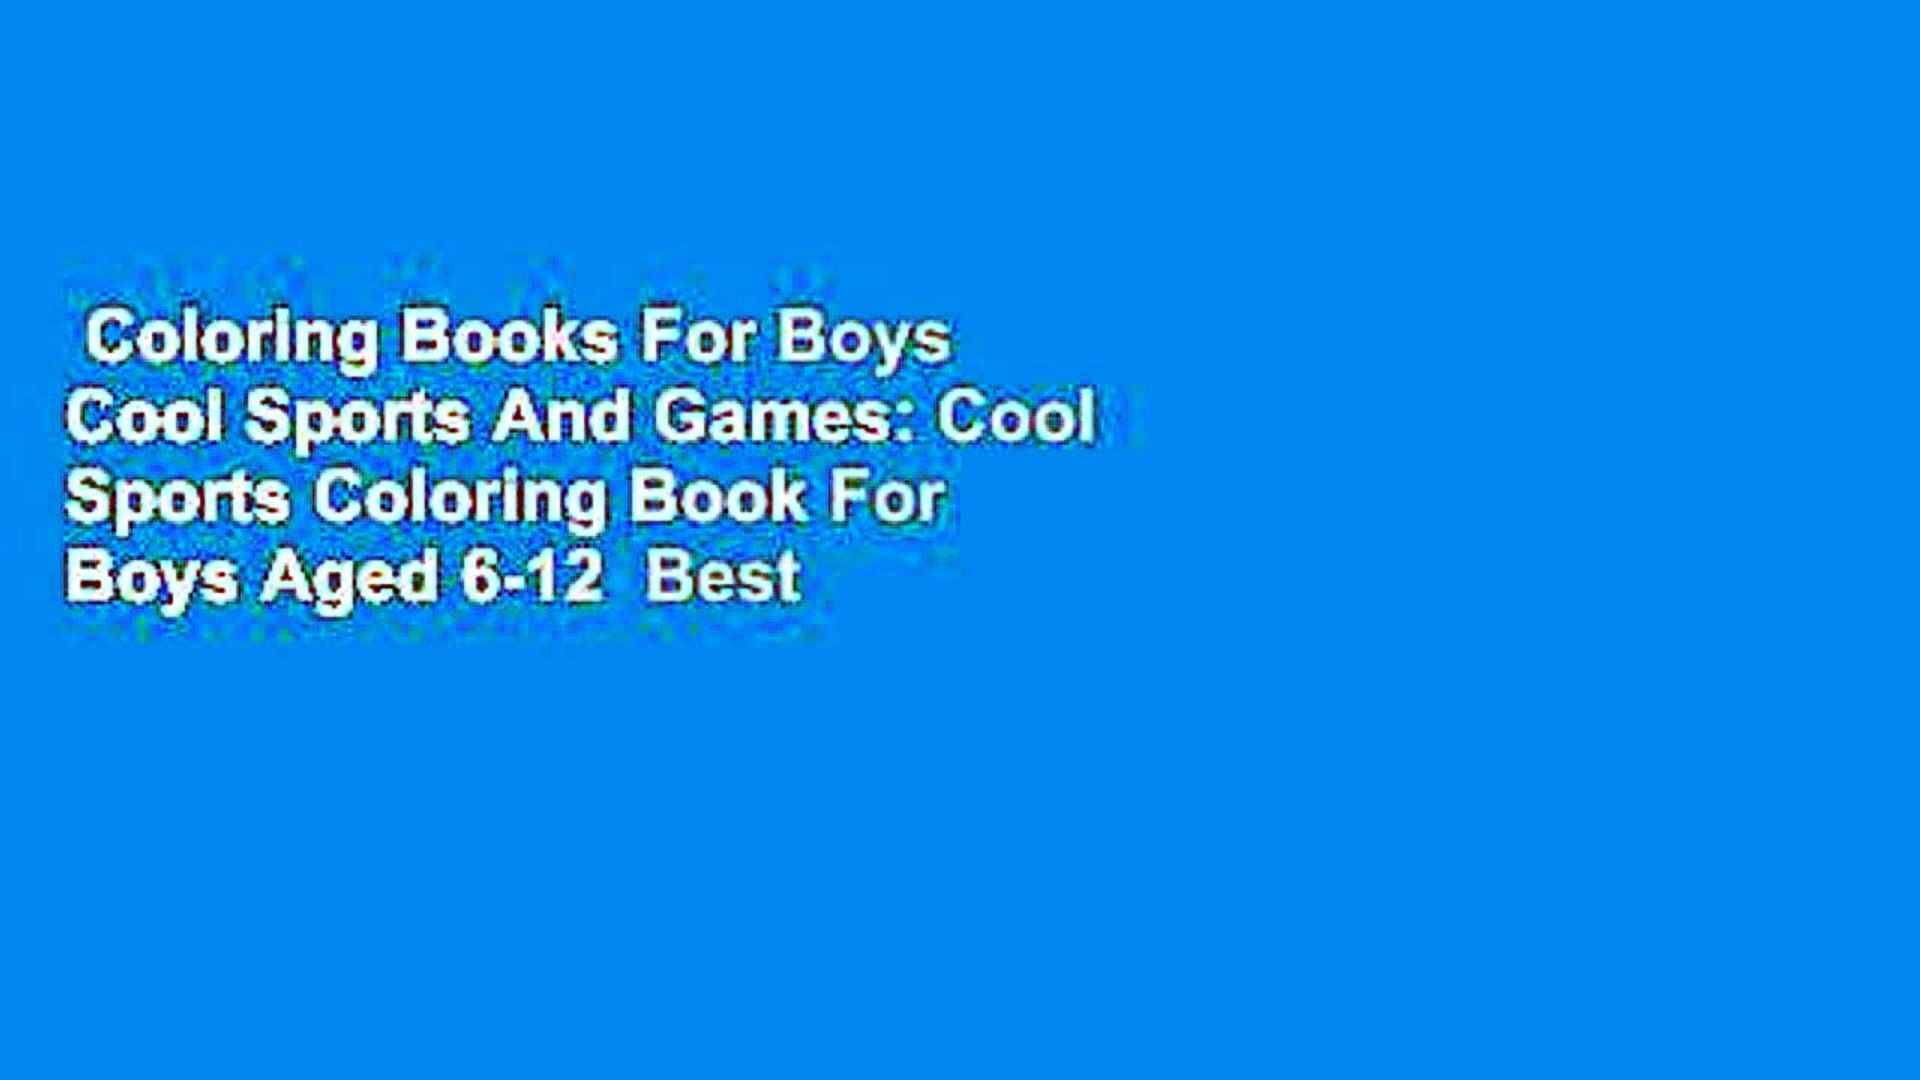 - Coloring Books For Boys Cool Sports And Games: Cool Sports